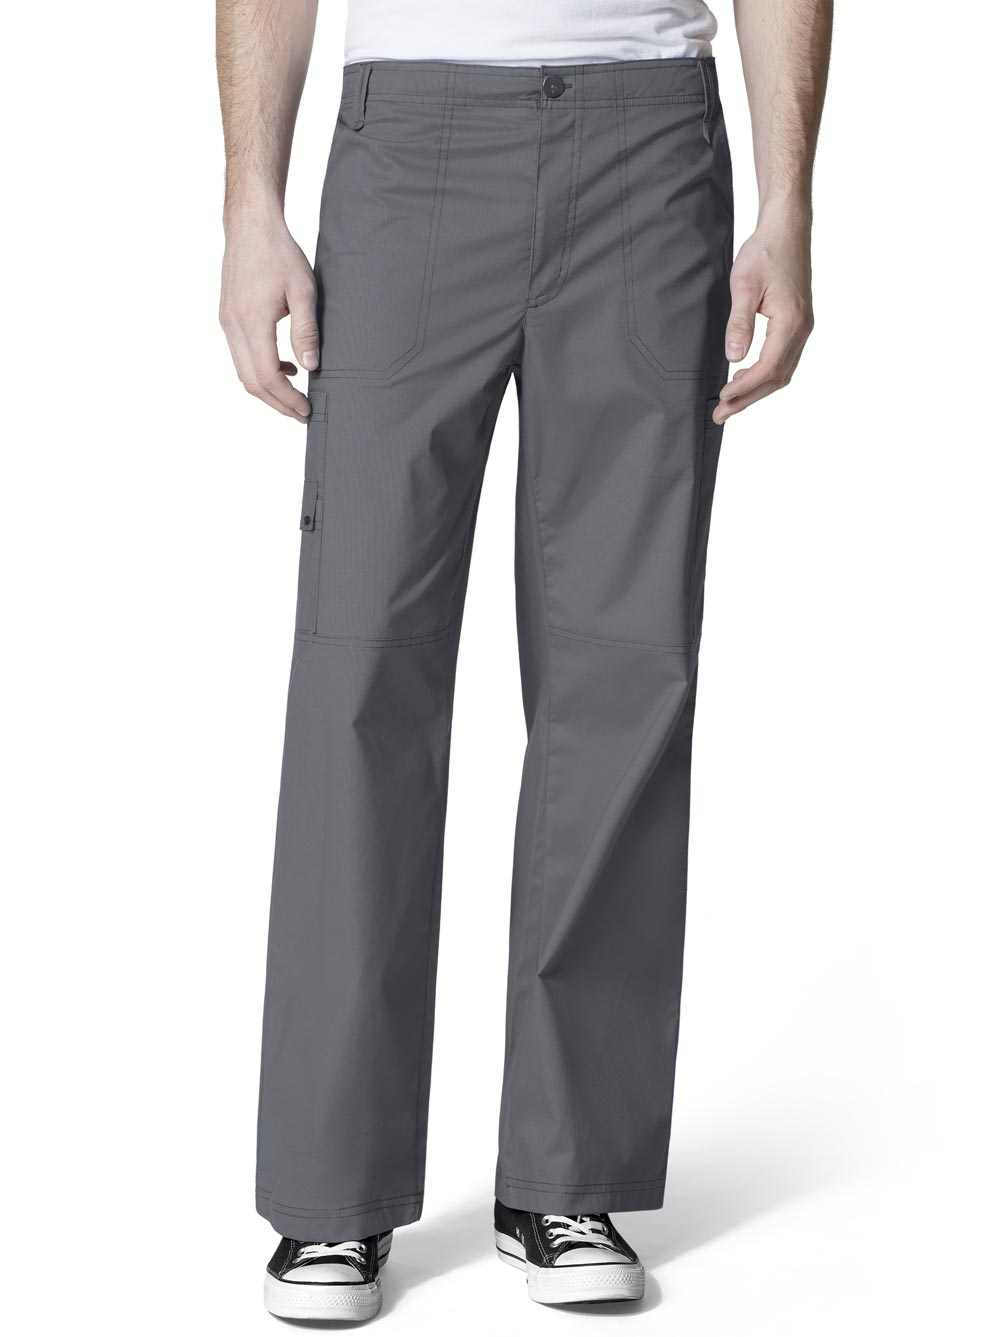 WonderFLEX 'Loyal' Mens Utility Straight Leg Pant